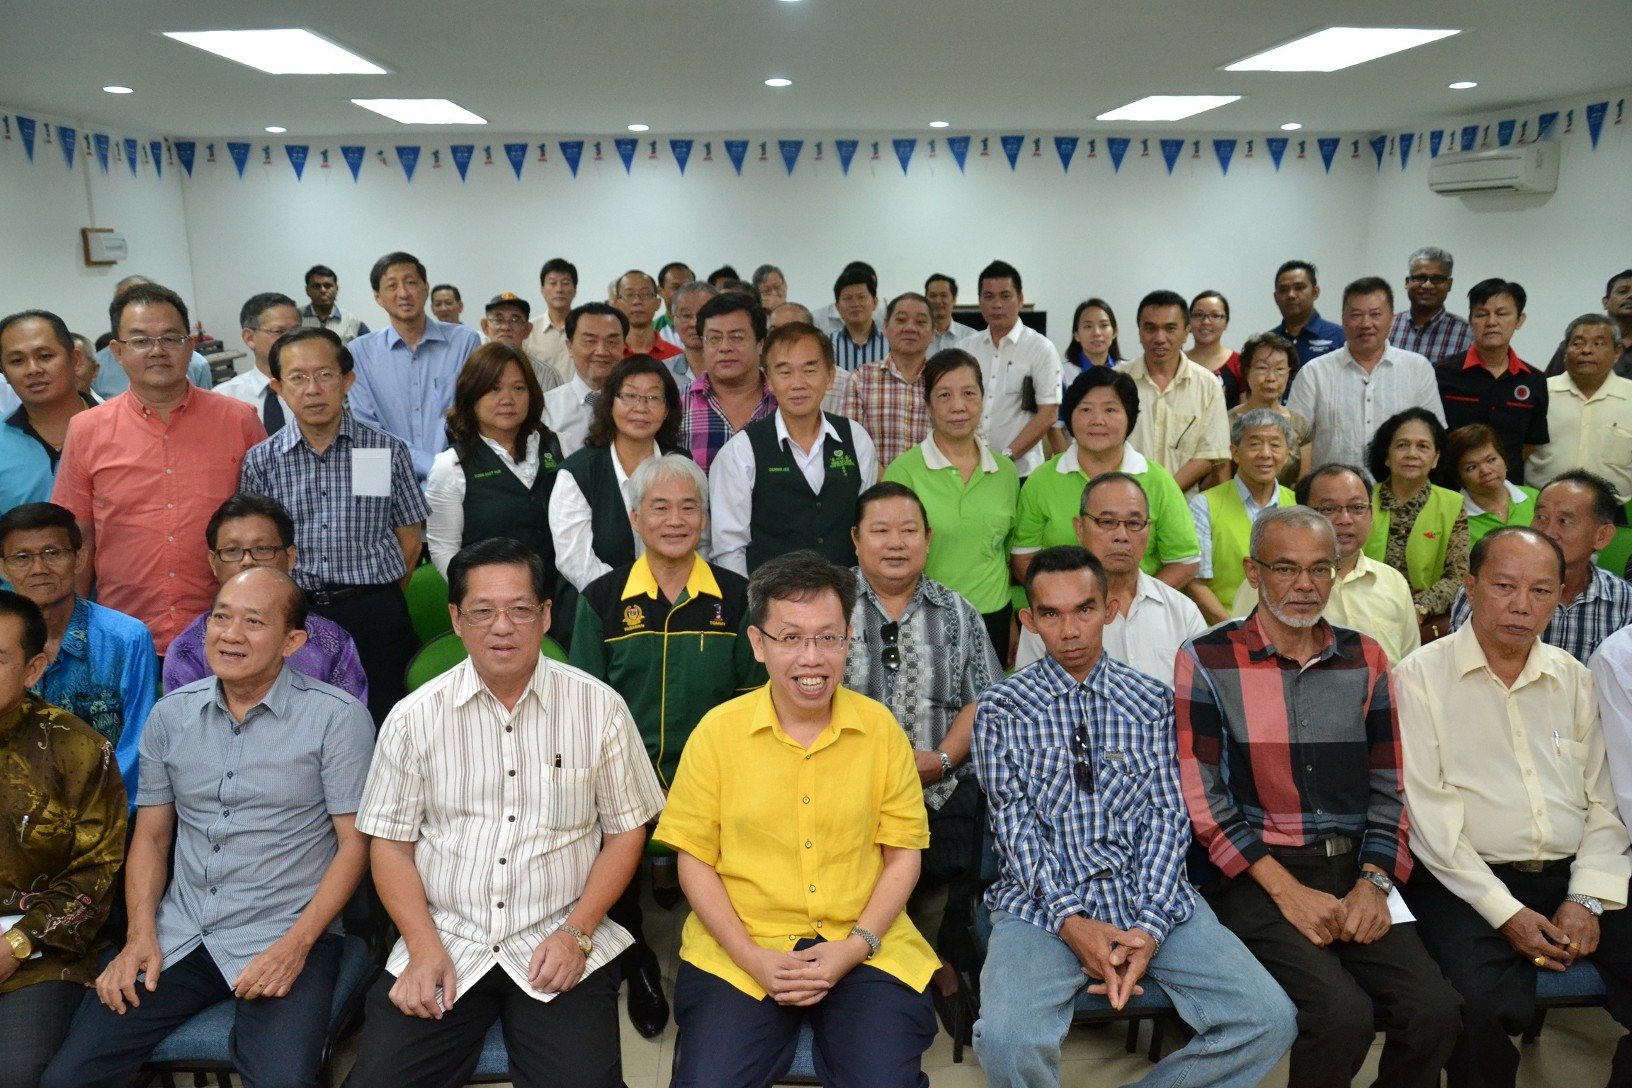 dr sim in yellow shirt in front row with the receipents